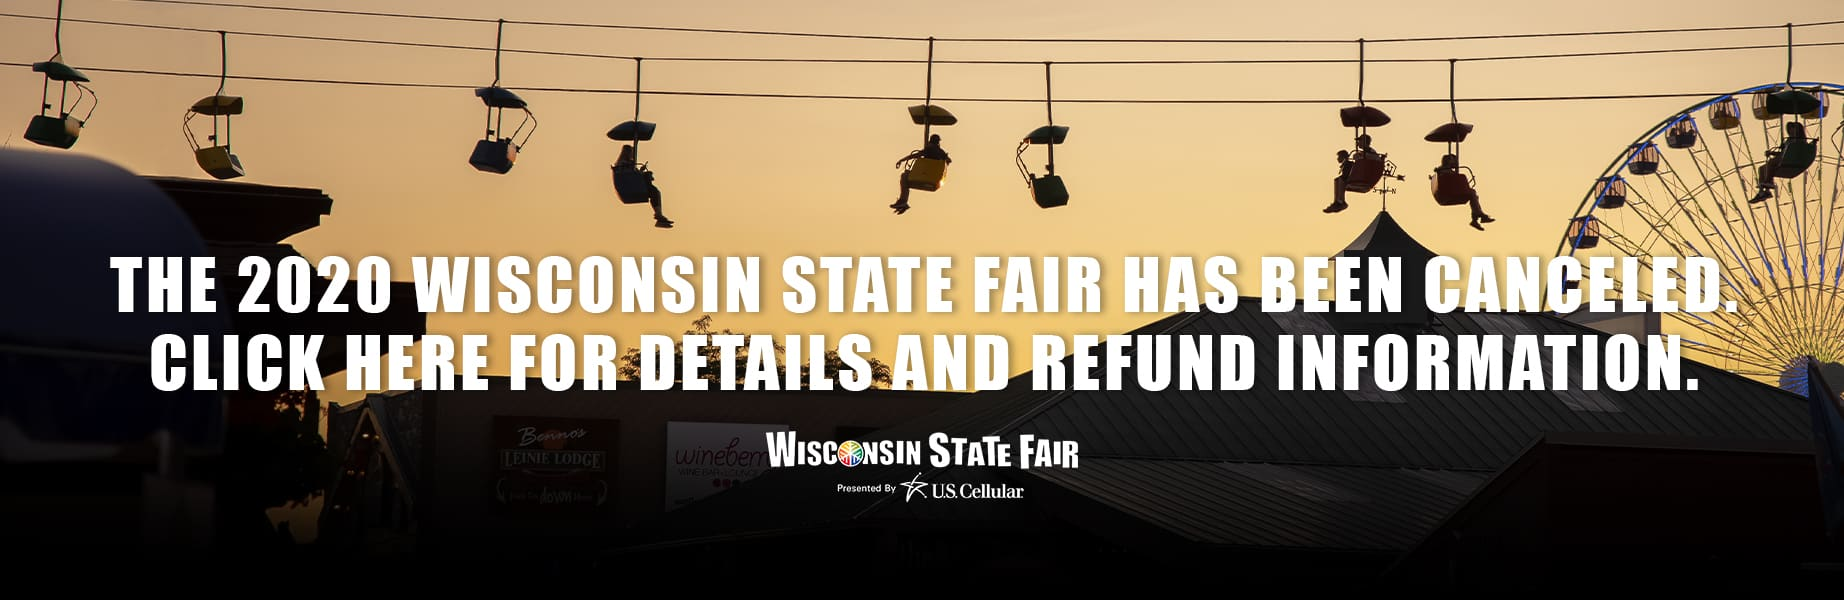 The 2020 Wisconsin State Fair has been canceled. Click here for details and refund information.